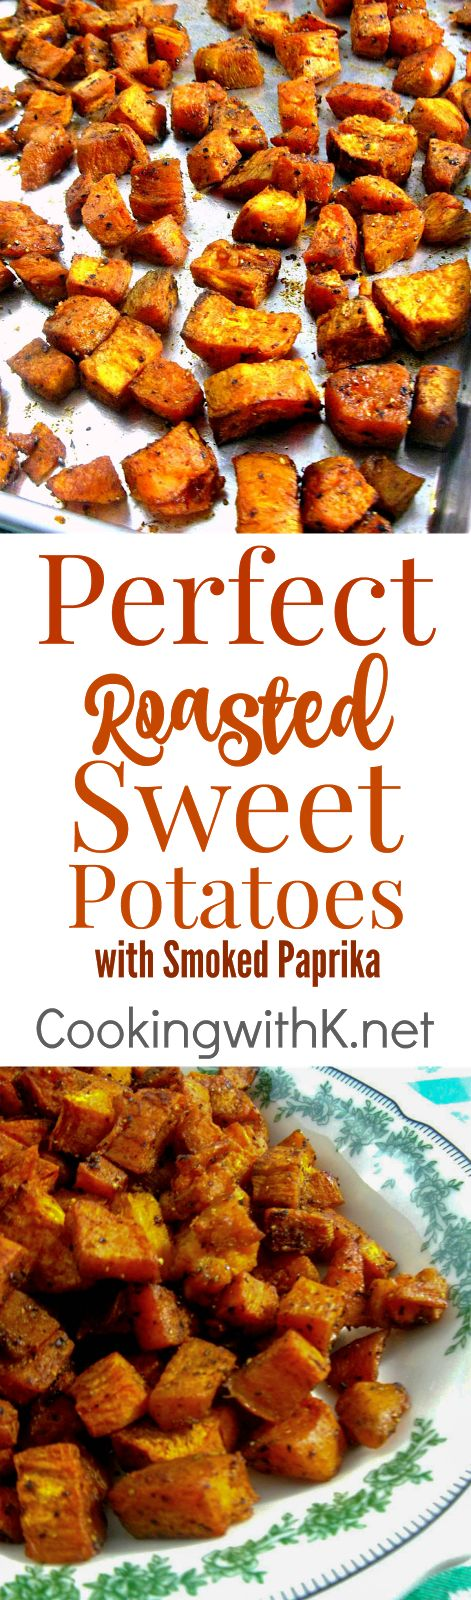 Perfect Roasted Sweet Potatoes with Smoked Paprika, roasted crispy tender bite size pieces of sweet potatoes coated with avocado oil, and generously sprinkled with paprika, coriander, salt and pepper and a pinch of cayenne pepper.